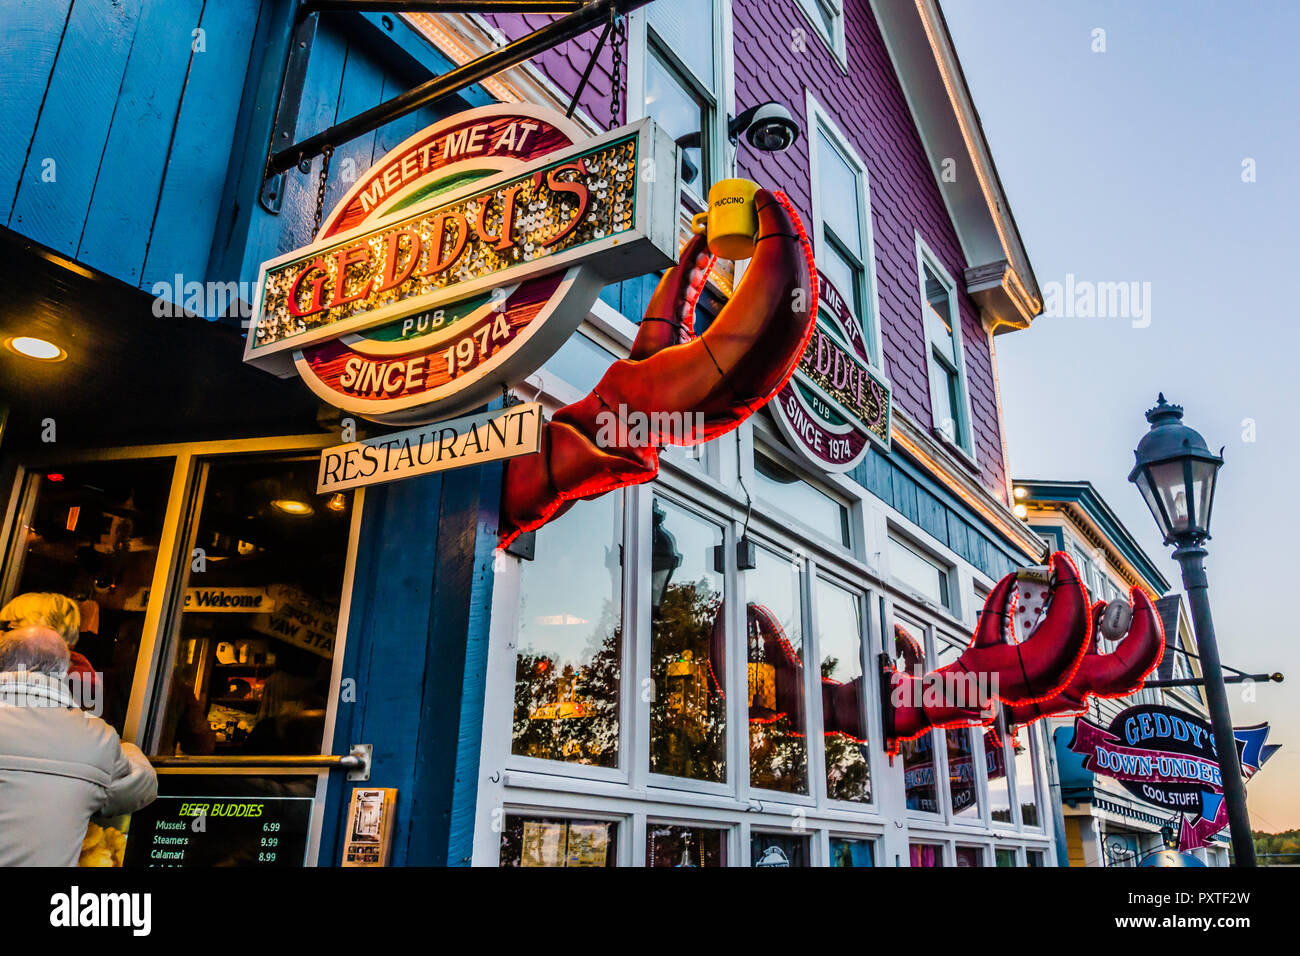 Geddy S Restaurant Bar Harbor Maine Usa Stock Photo